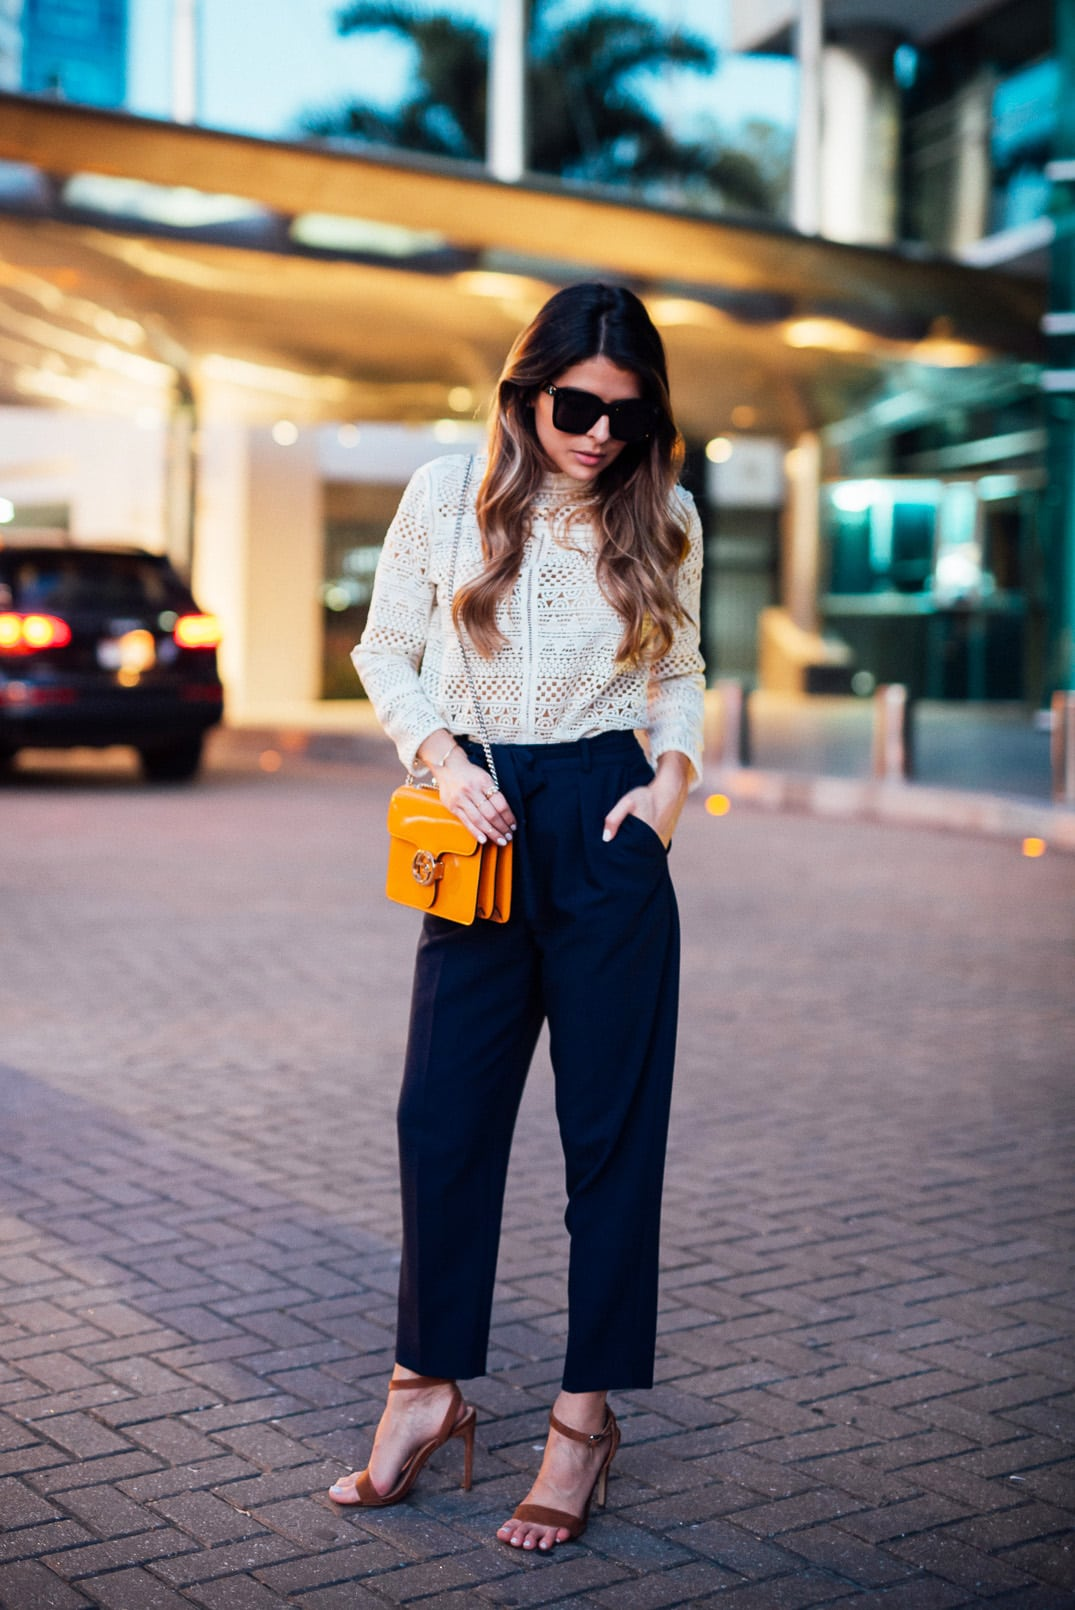 Pam Hetlinger, The Girl From Panama wearing a mango crochet top, high waist topshop navy pants, ankle strap sandals and a gucci interlocking bag